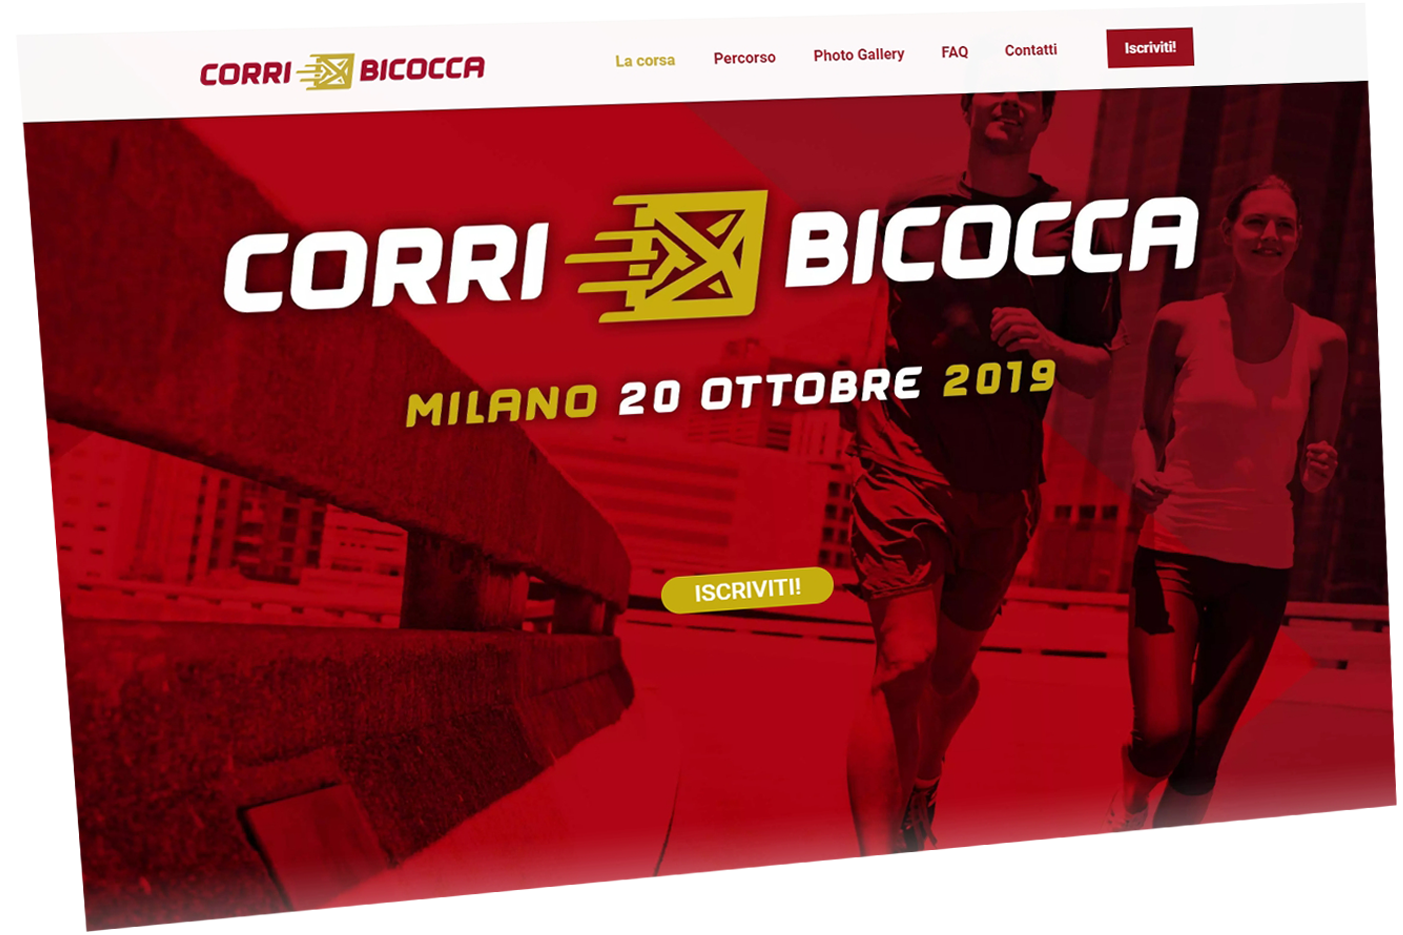 CorriBicocca.it